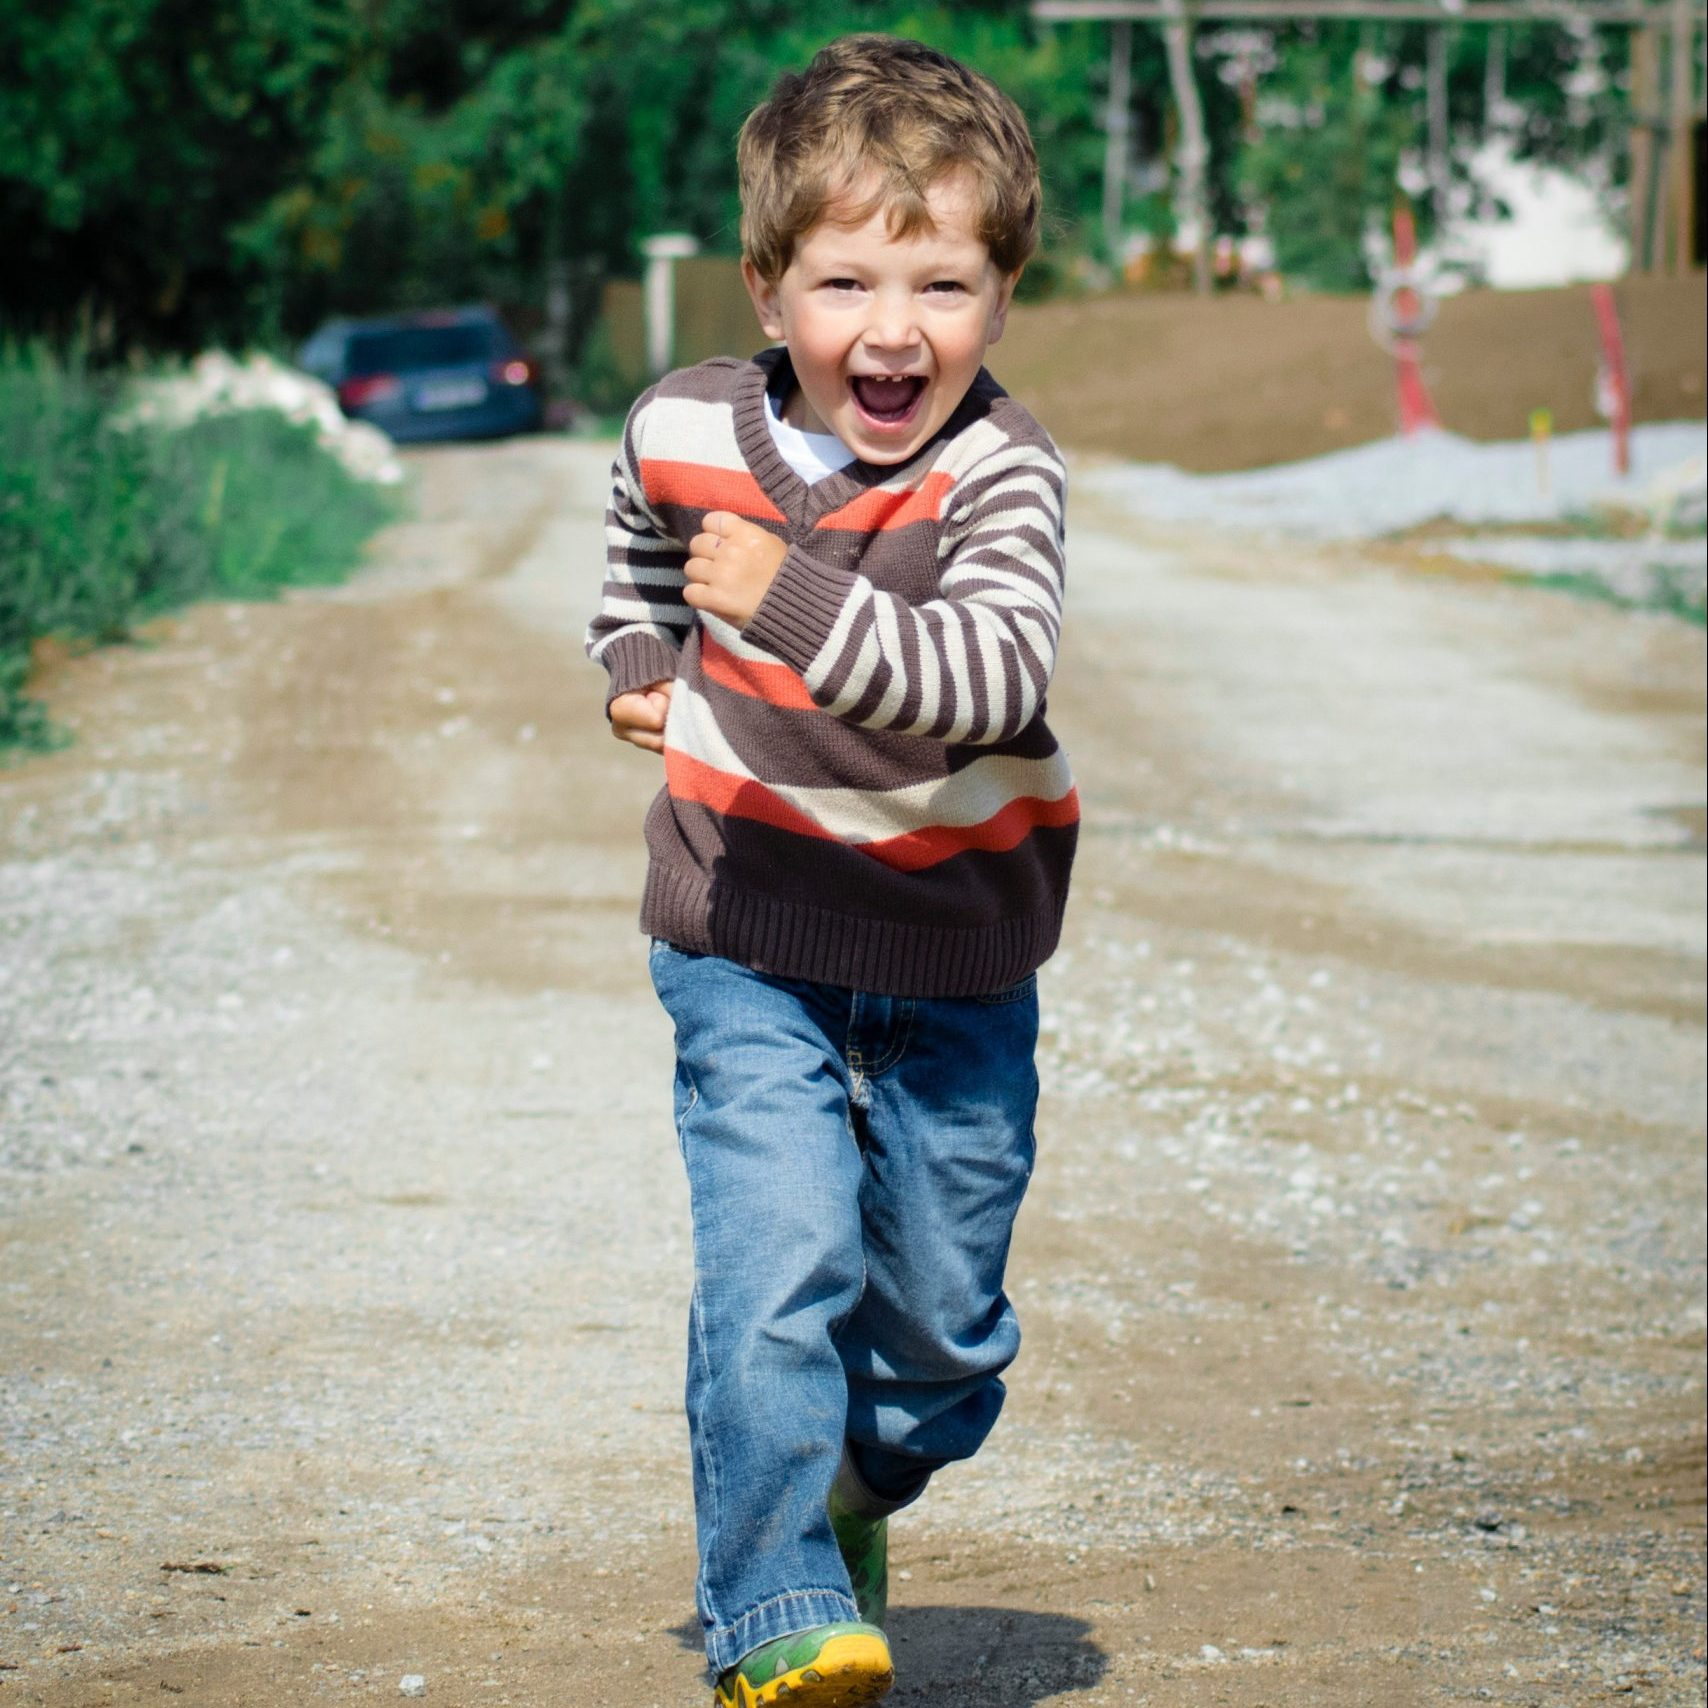 Young boy running happily towards the camera